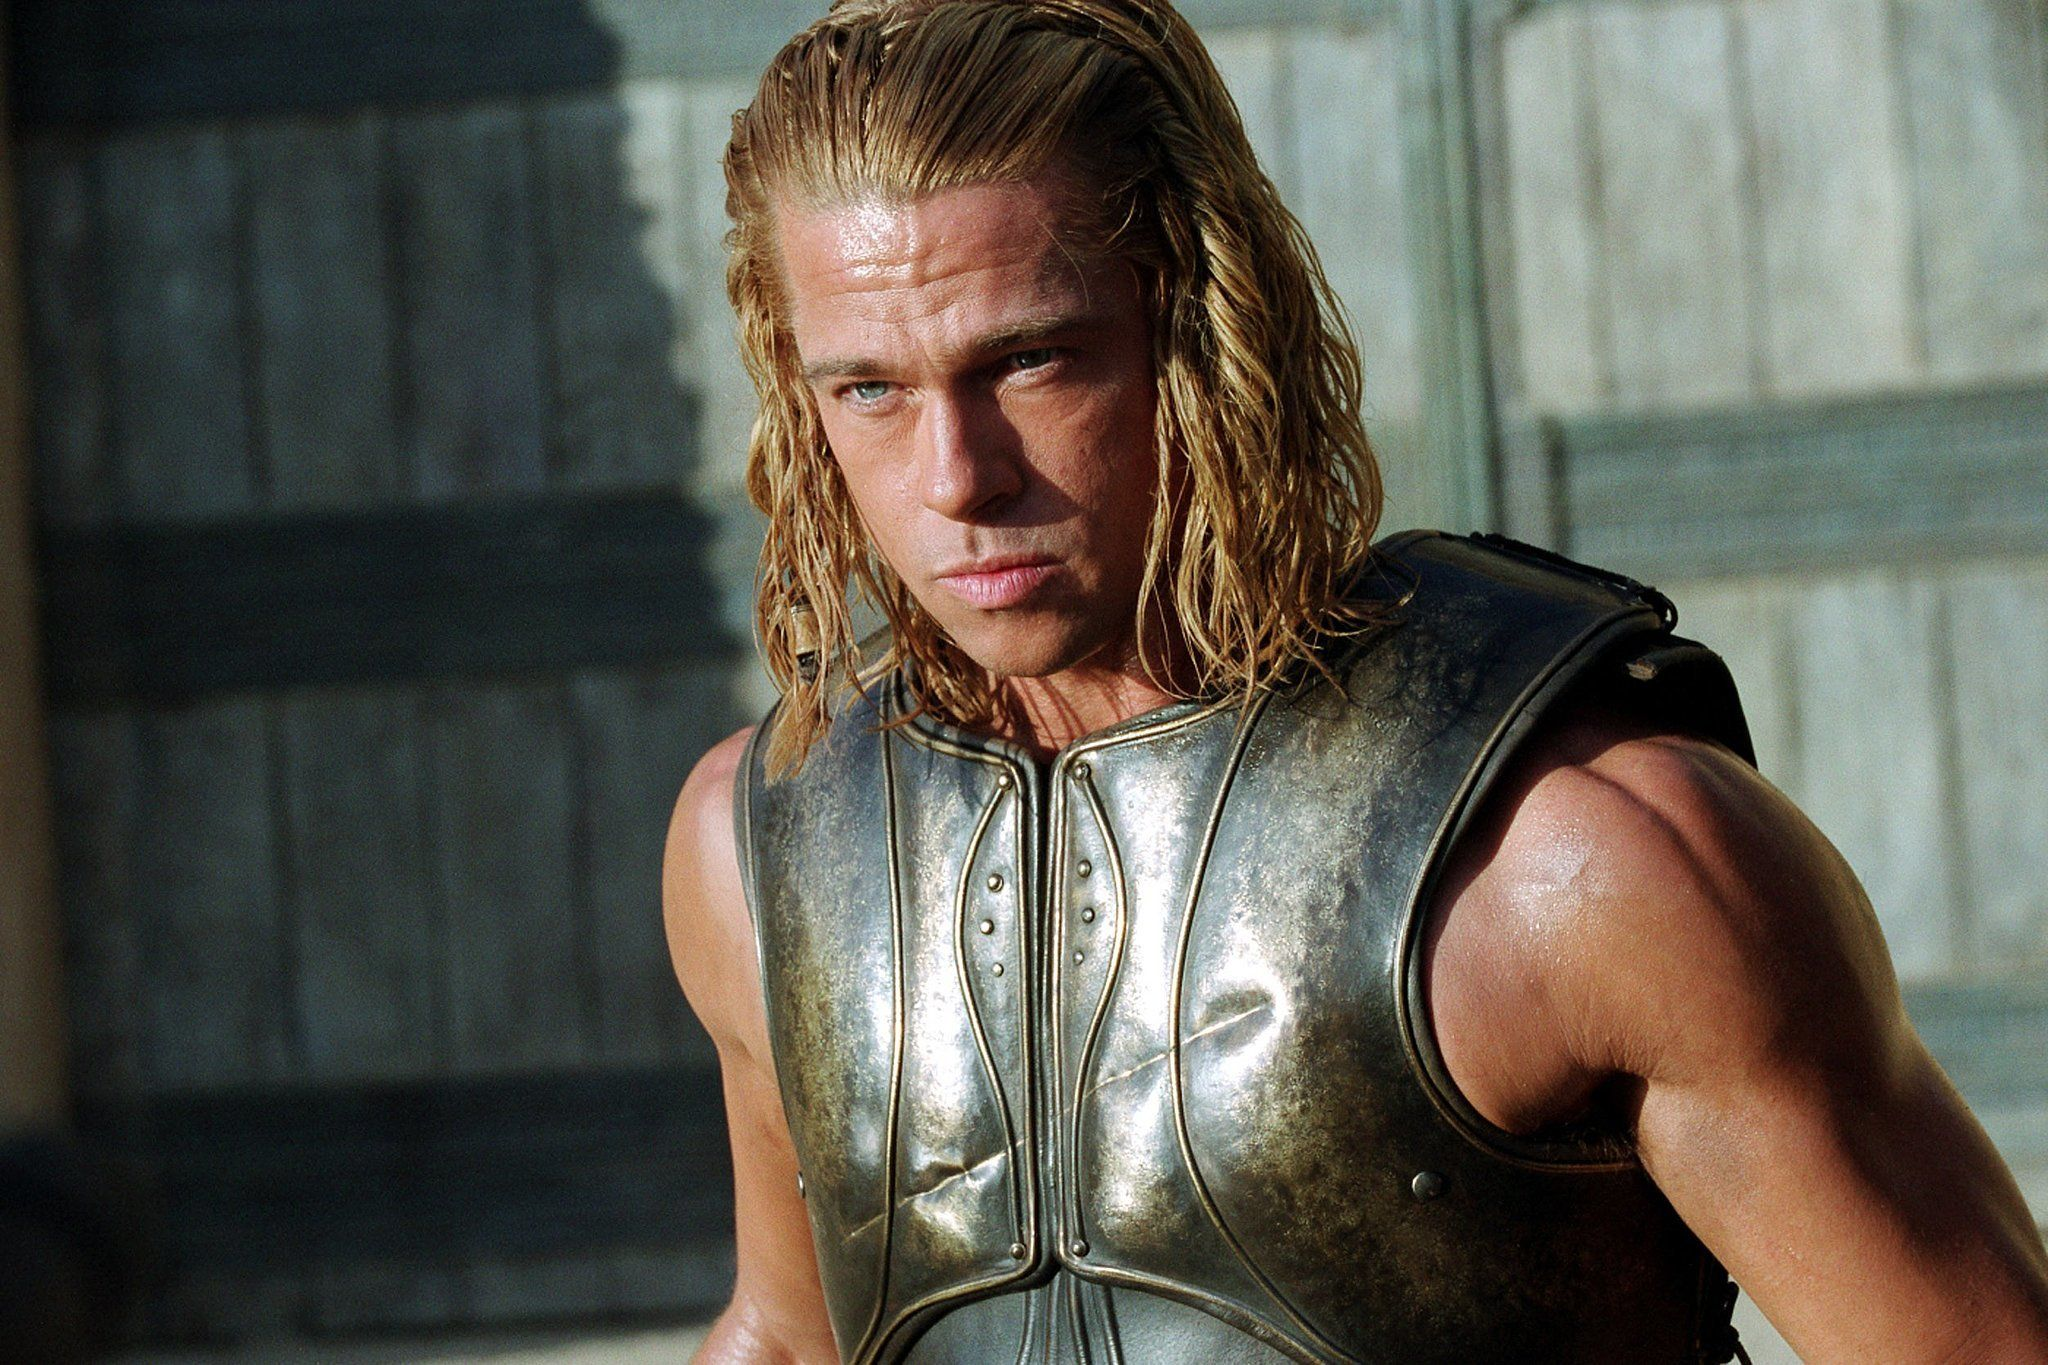 Brad Pitt looking serious wearing armor in Troy